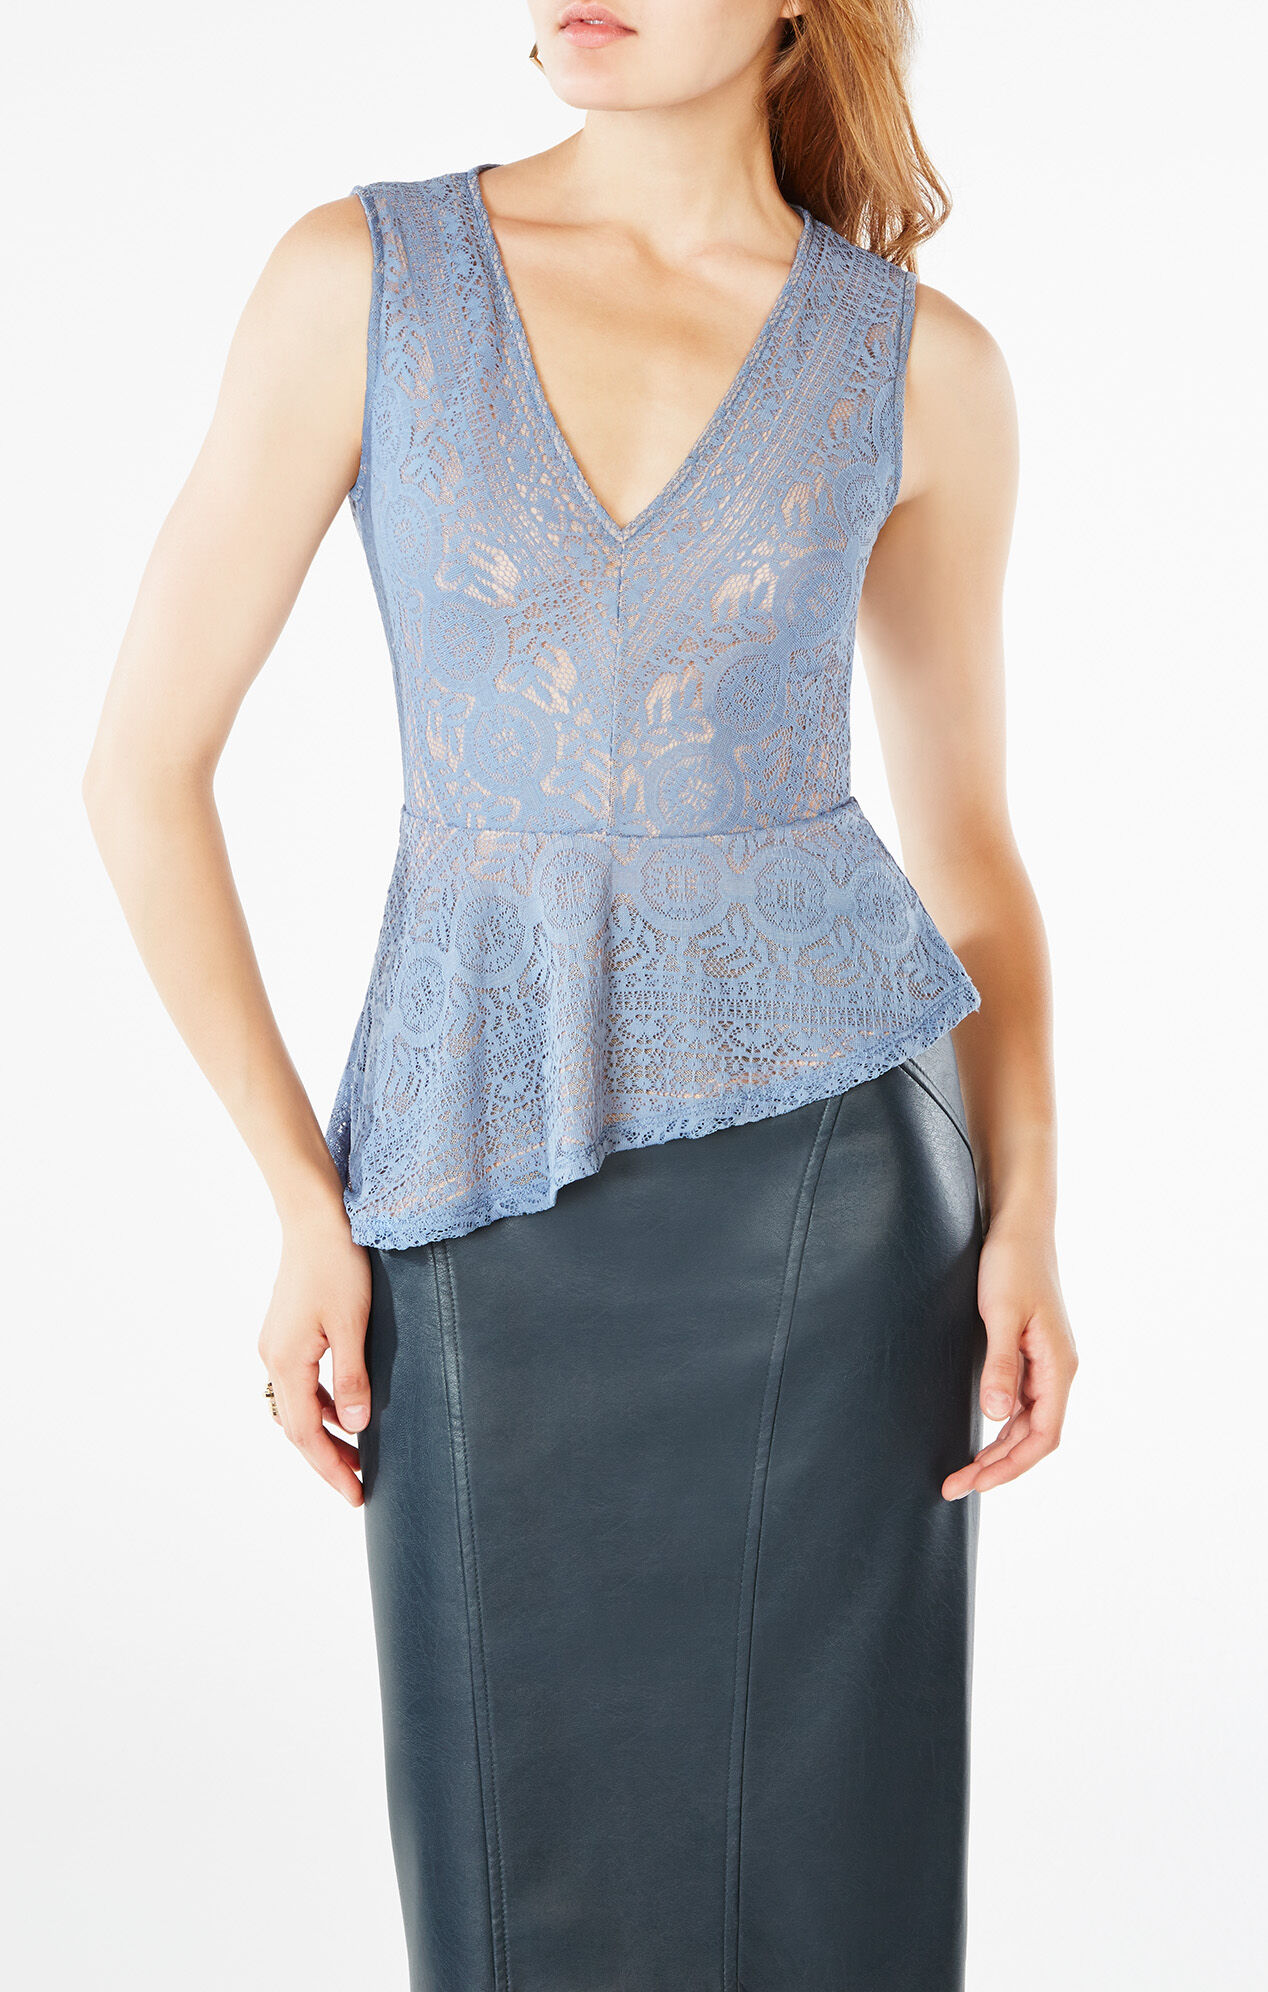 Find lace peplum tops at ShopStyle. Shop the latest collection of lace peplum tops from the most popular stores - all in one place.